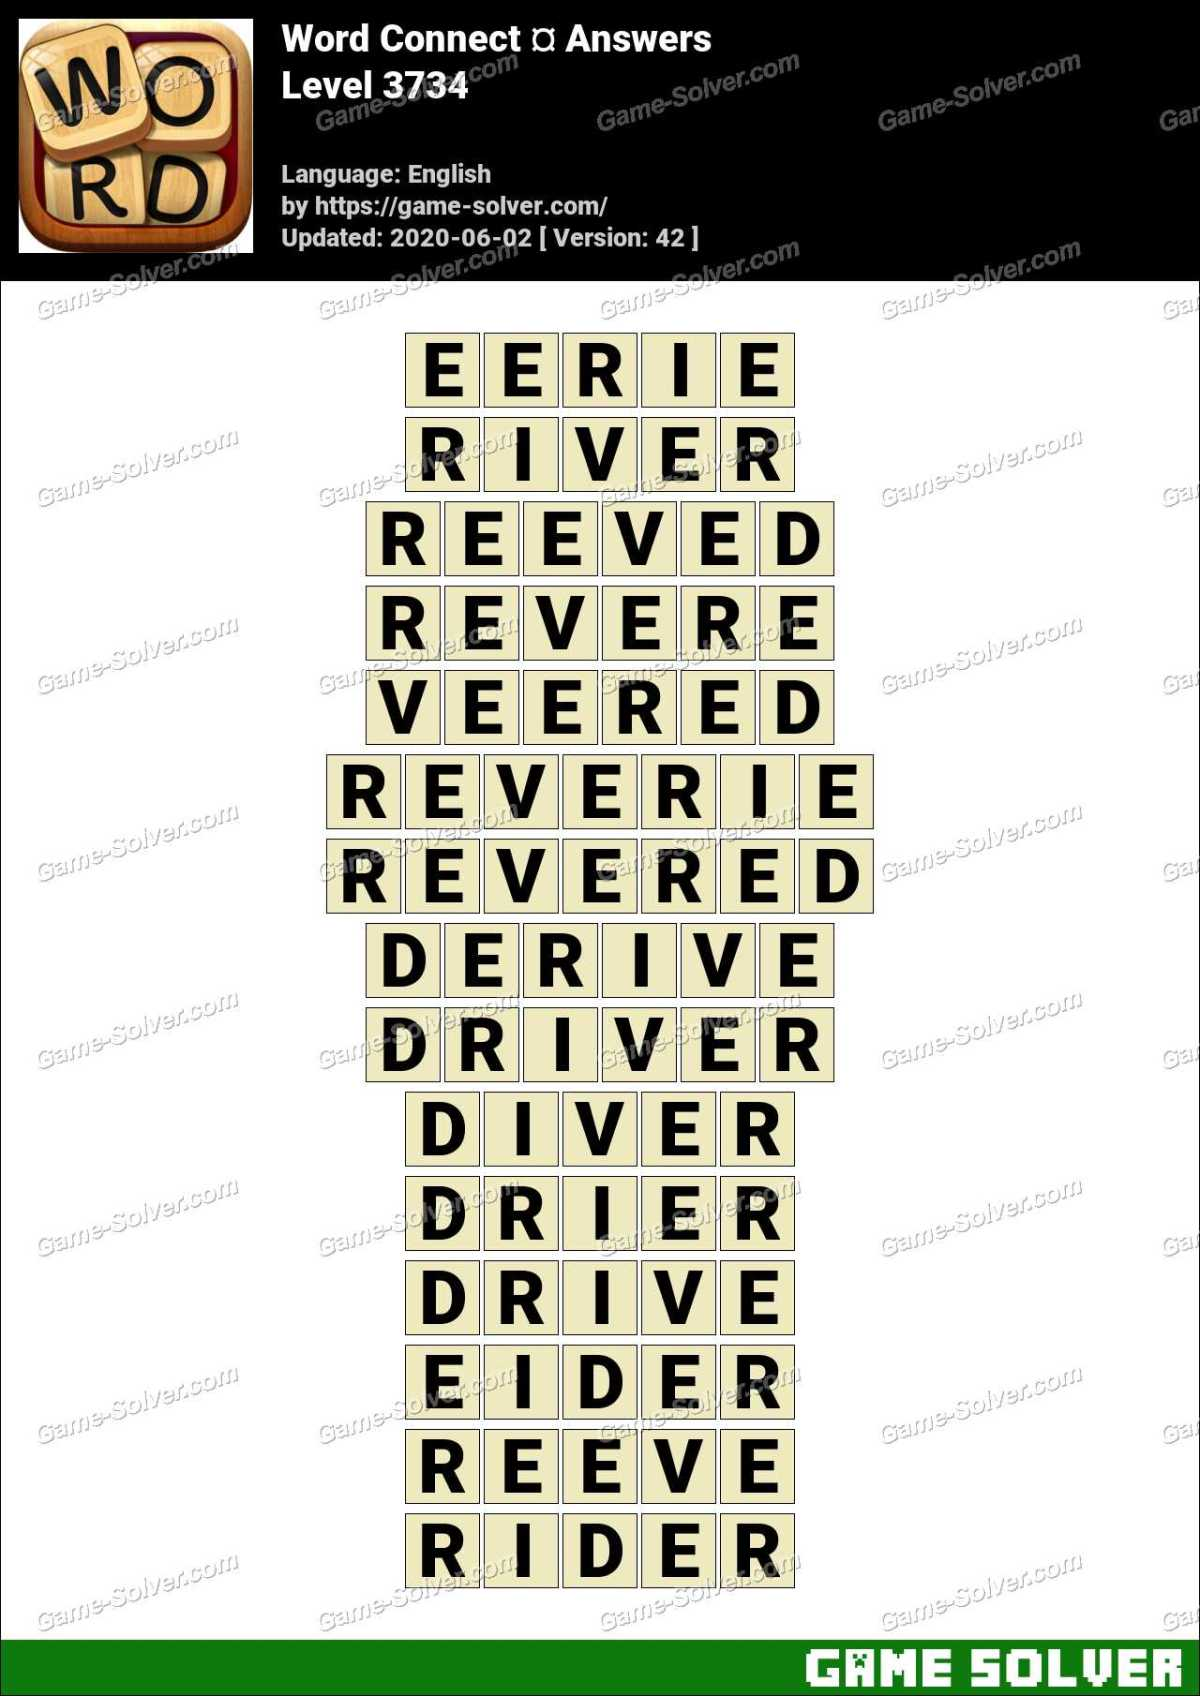 Word Connect Level 3734 Answers